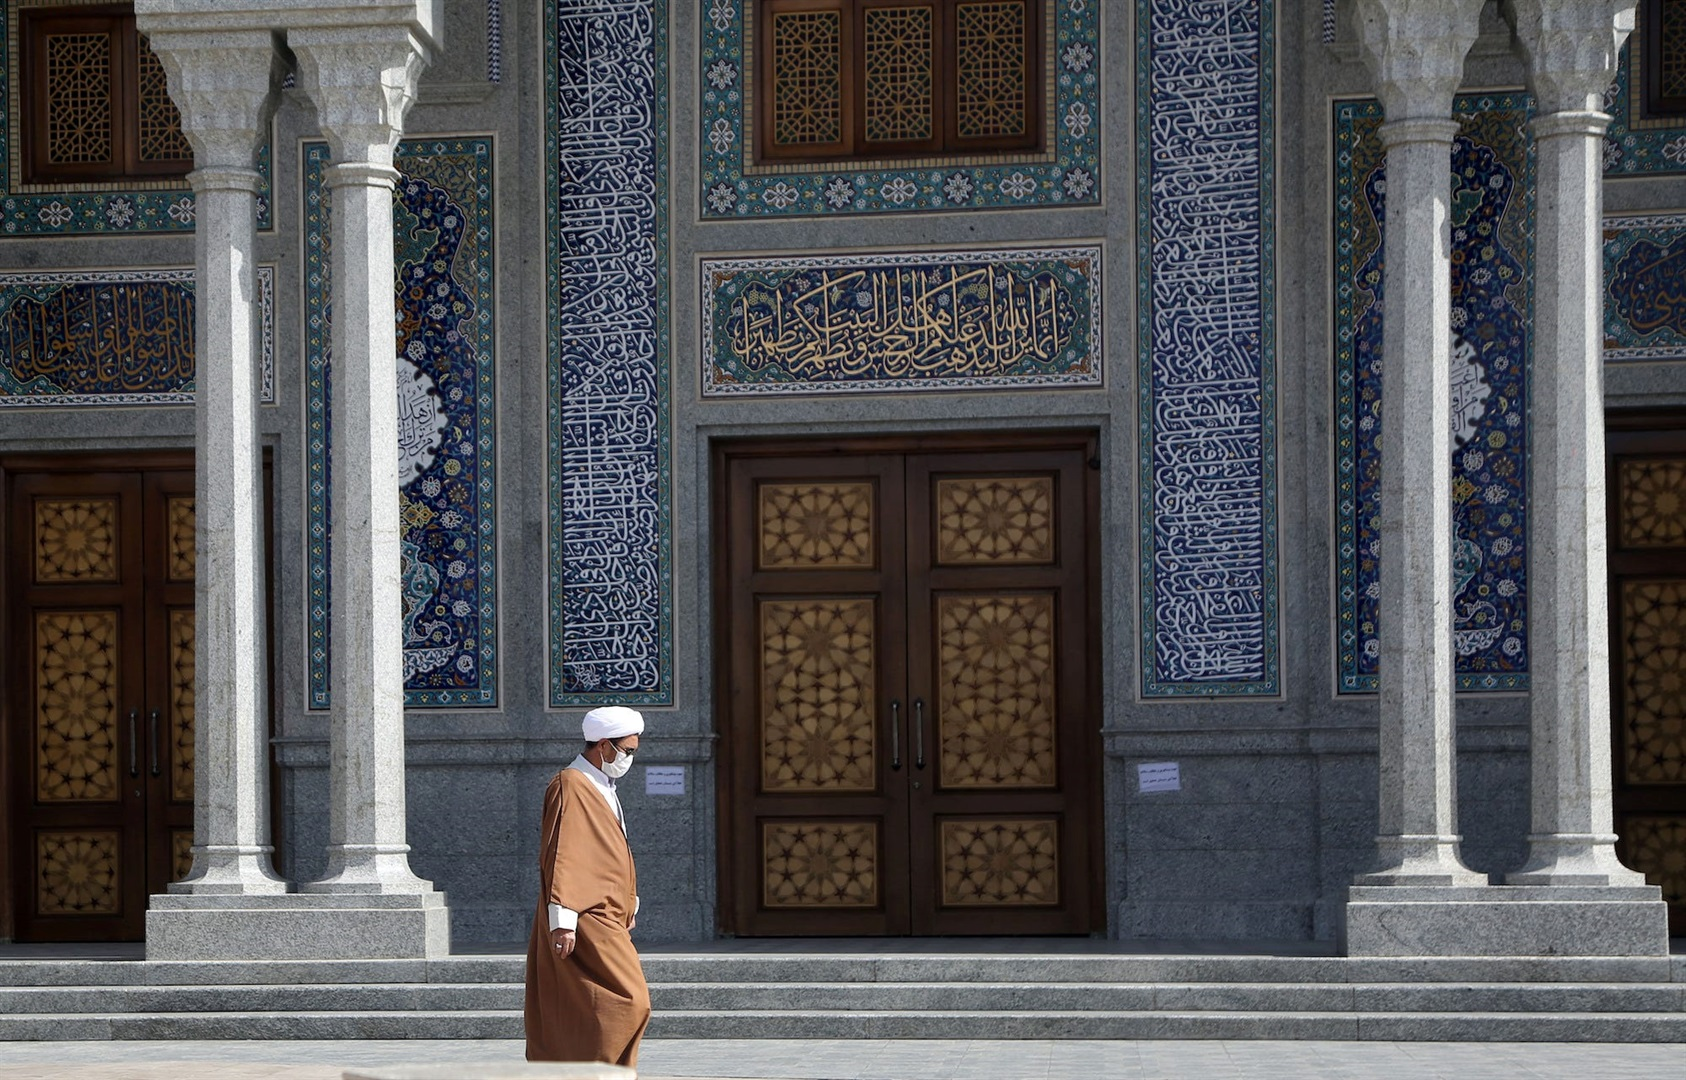 'Virus at Iran's gates': How Tehran failed to stop outbreak